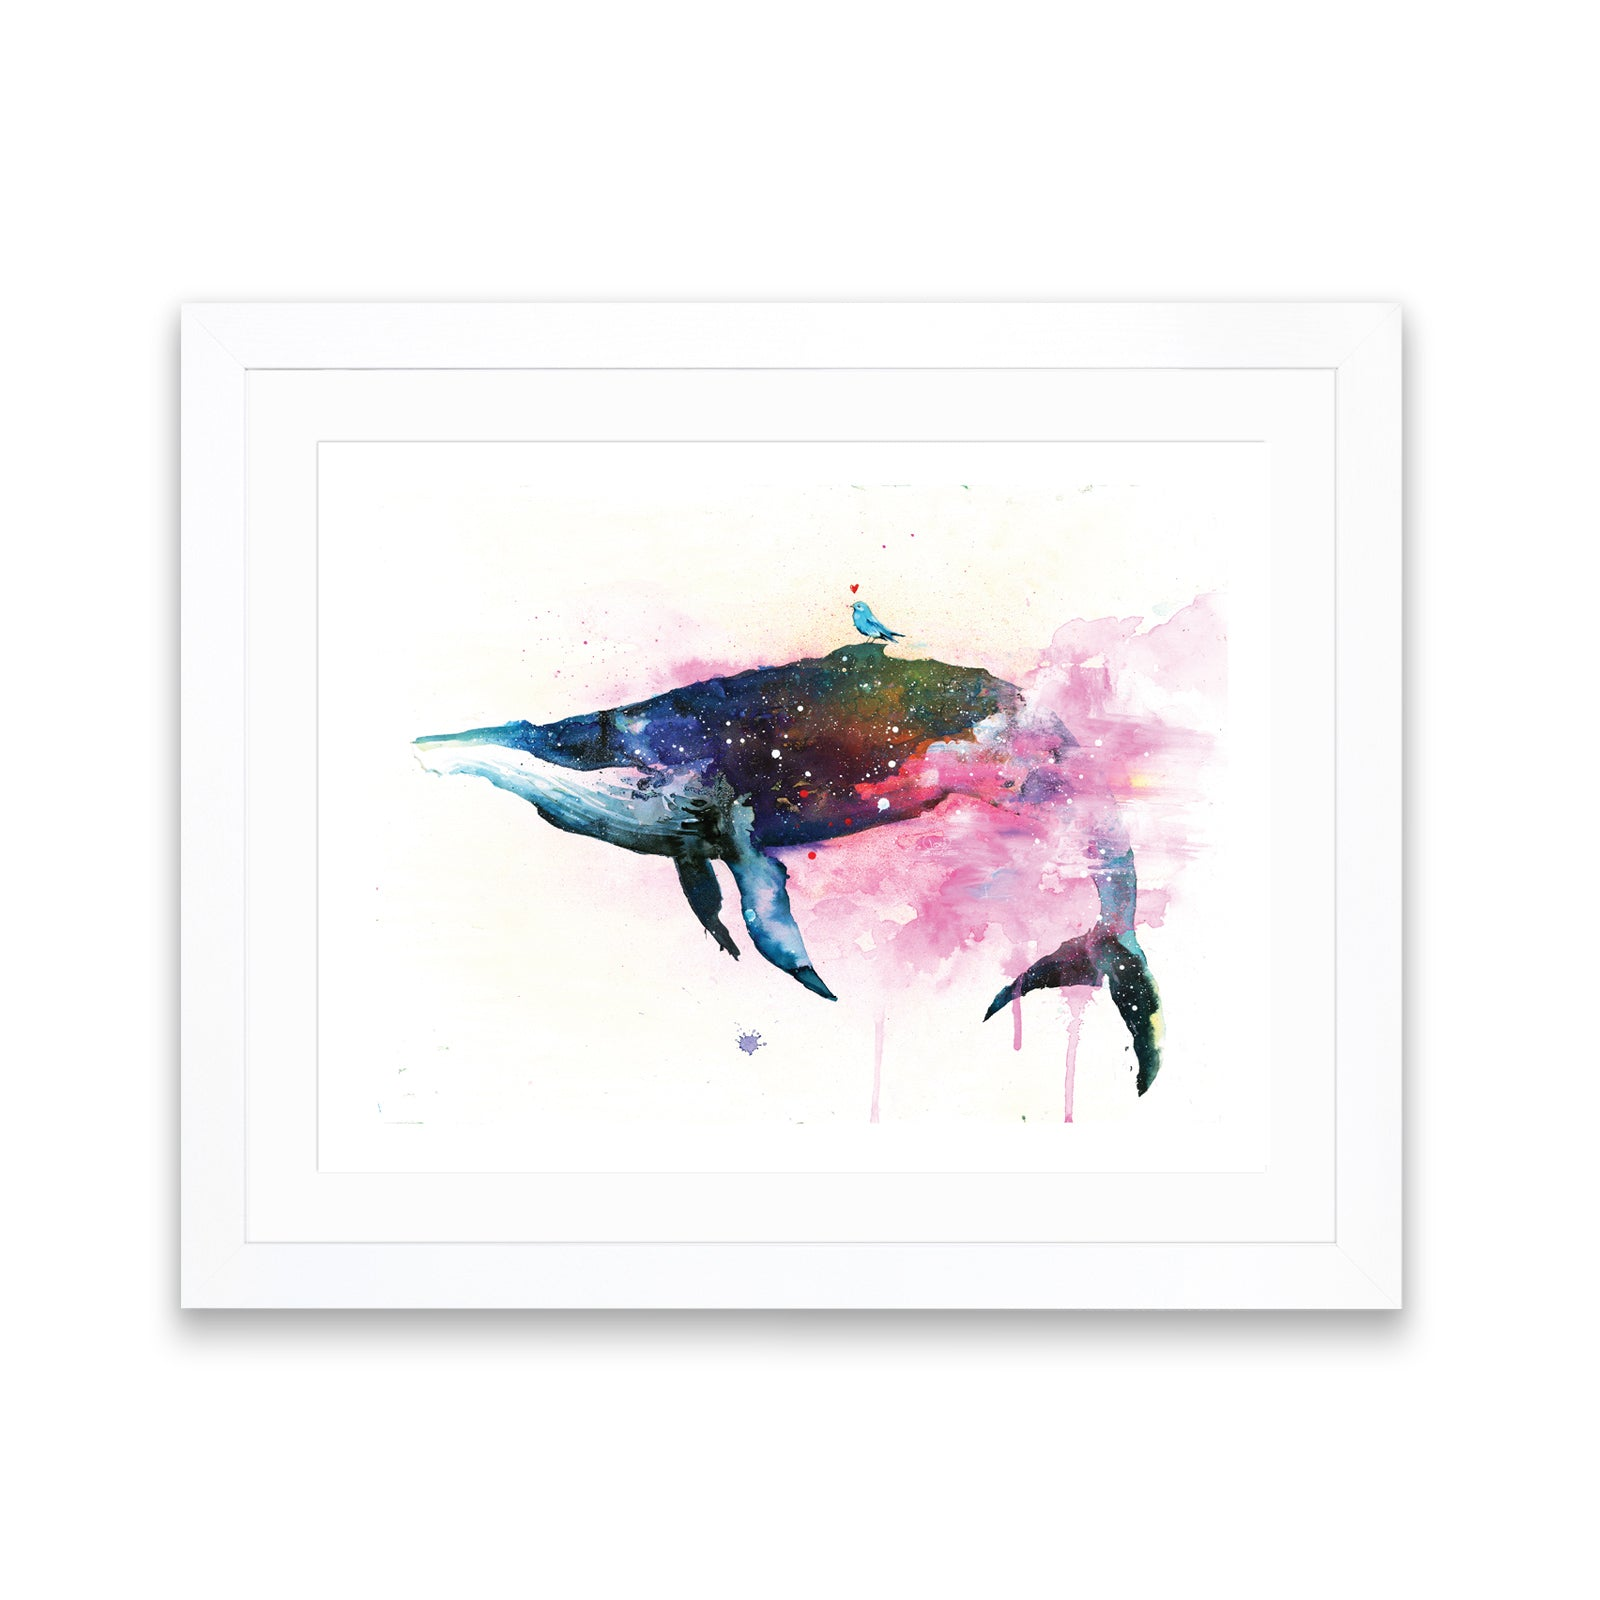 Fish and Bird II